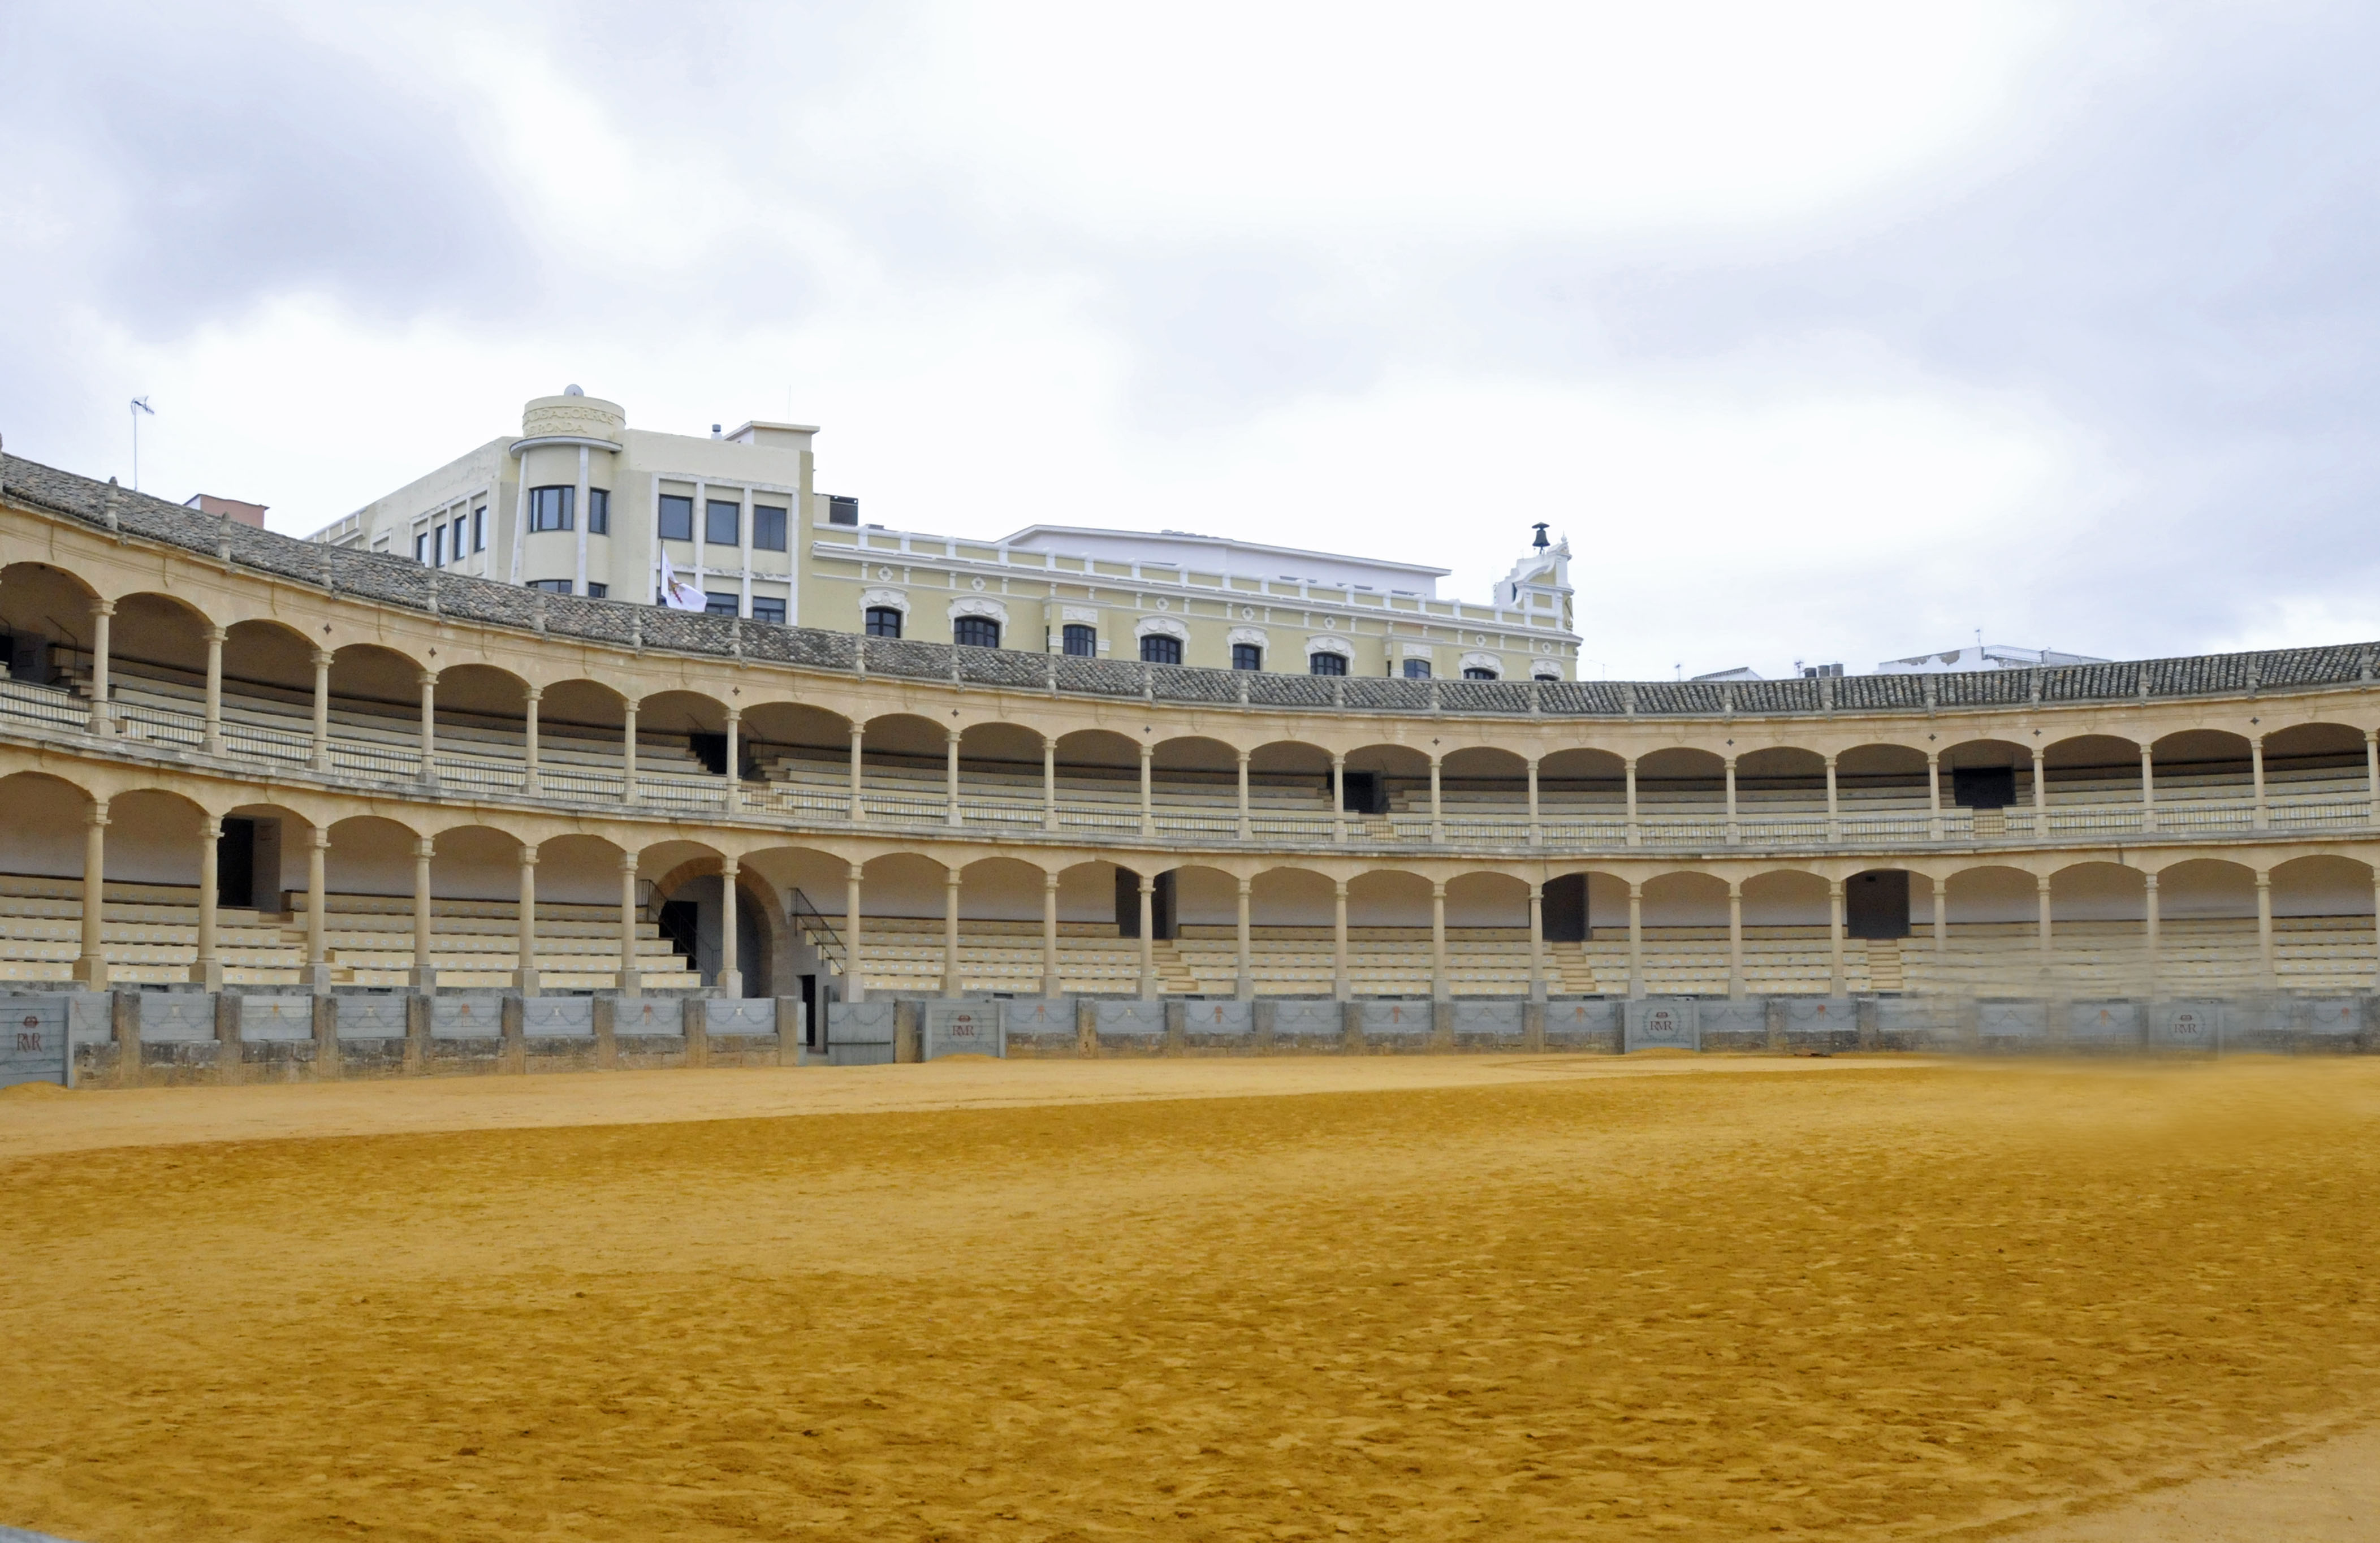 Eighteenth-century Bullring in Ronda, Spain (Photo by Don Knebel)